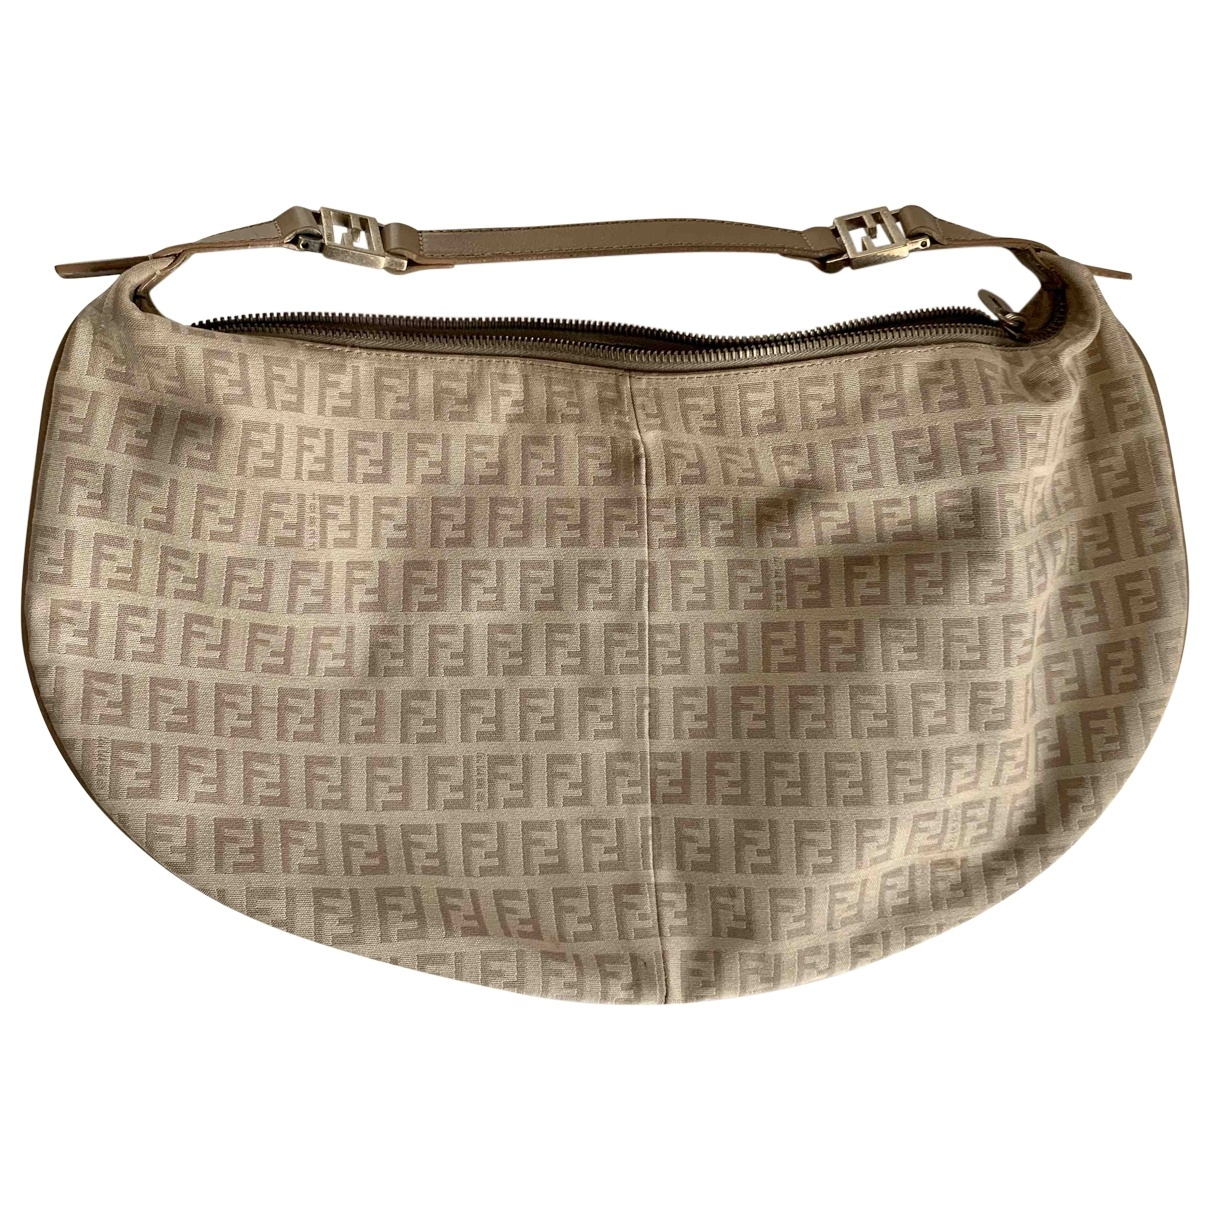 Fendi \N Beige Cotton handbag for Women \N